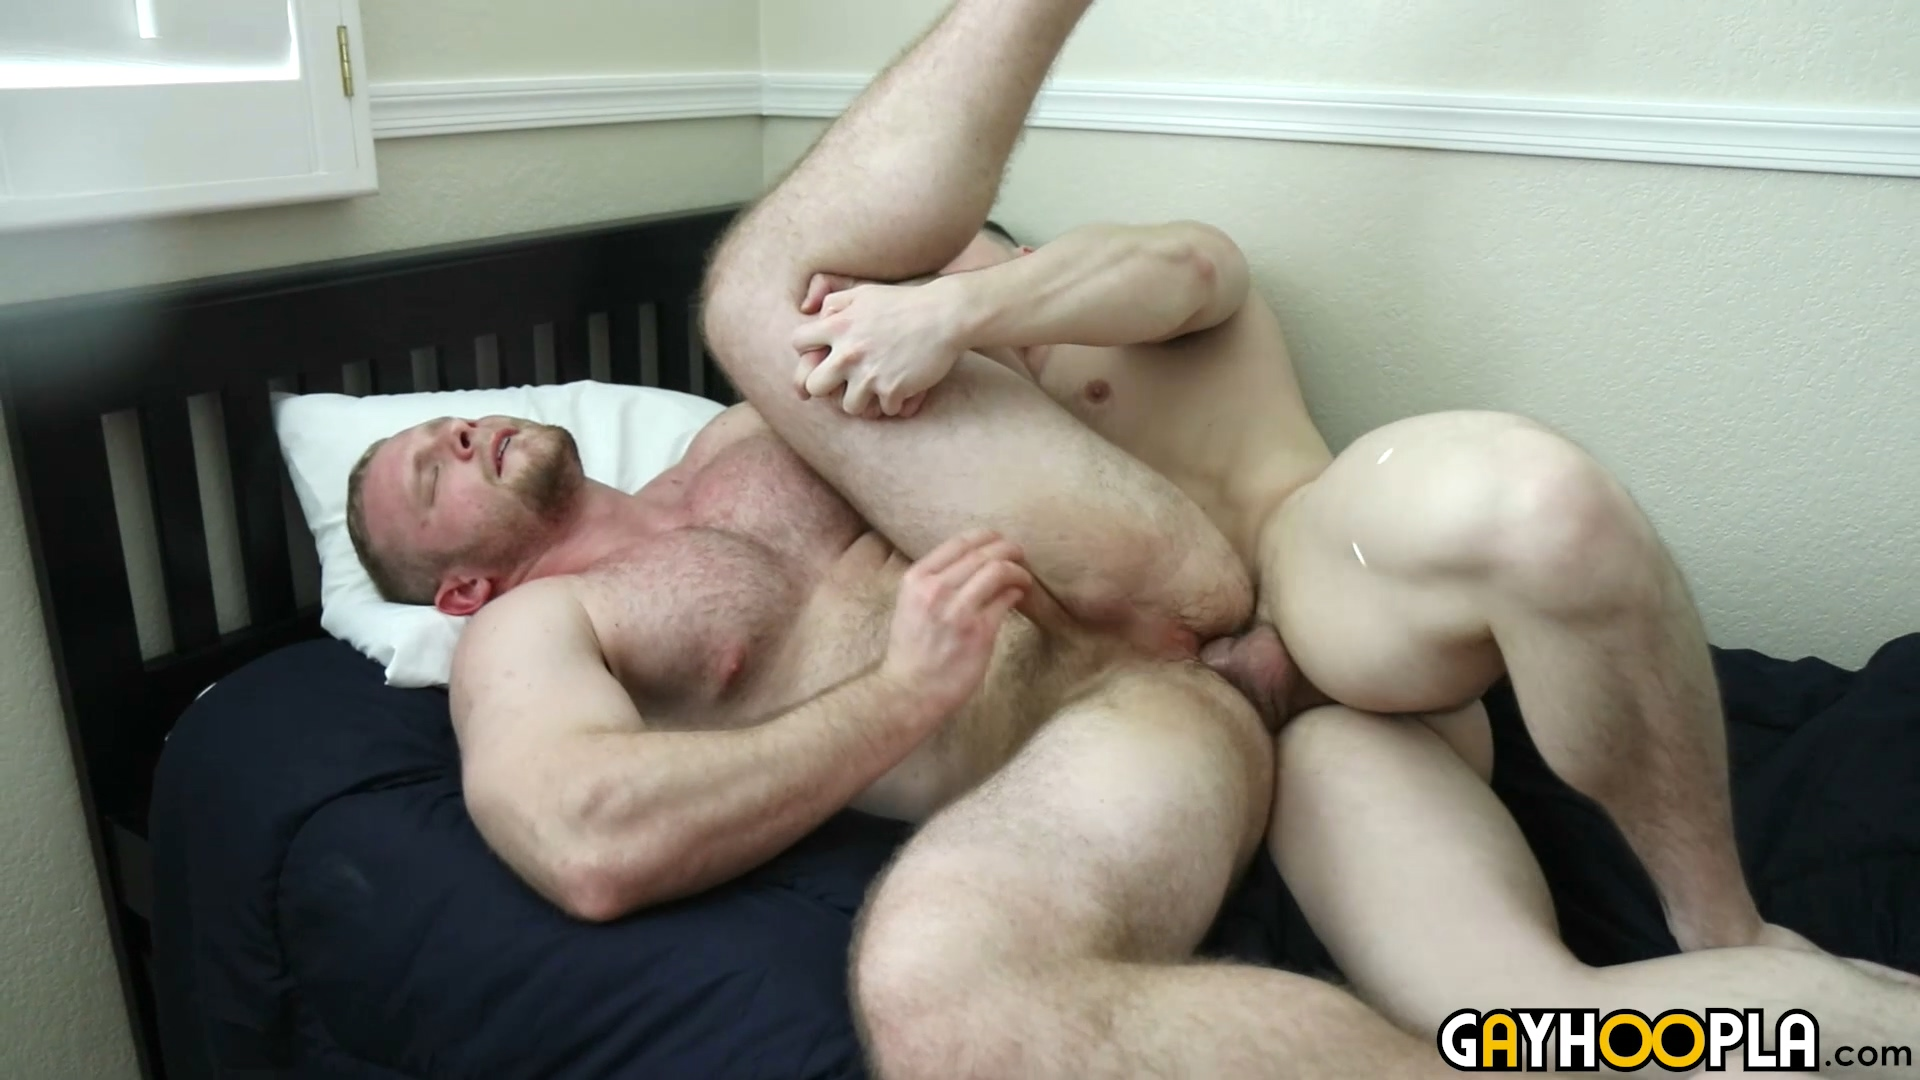 Big Dick Twink Raw Threesome Fuck Baresexyboyscom